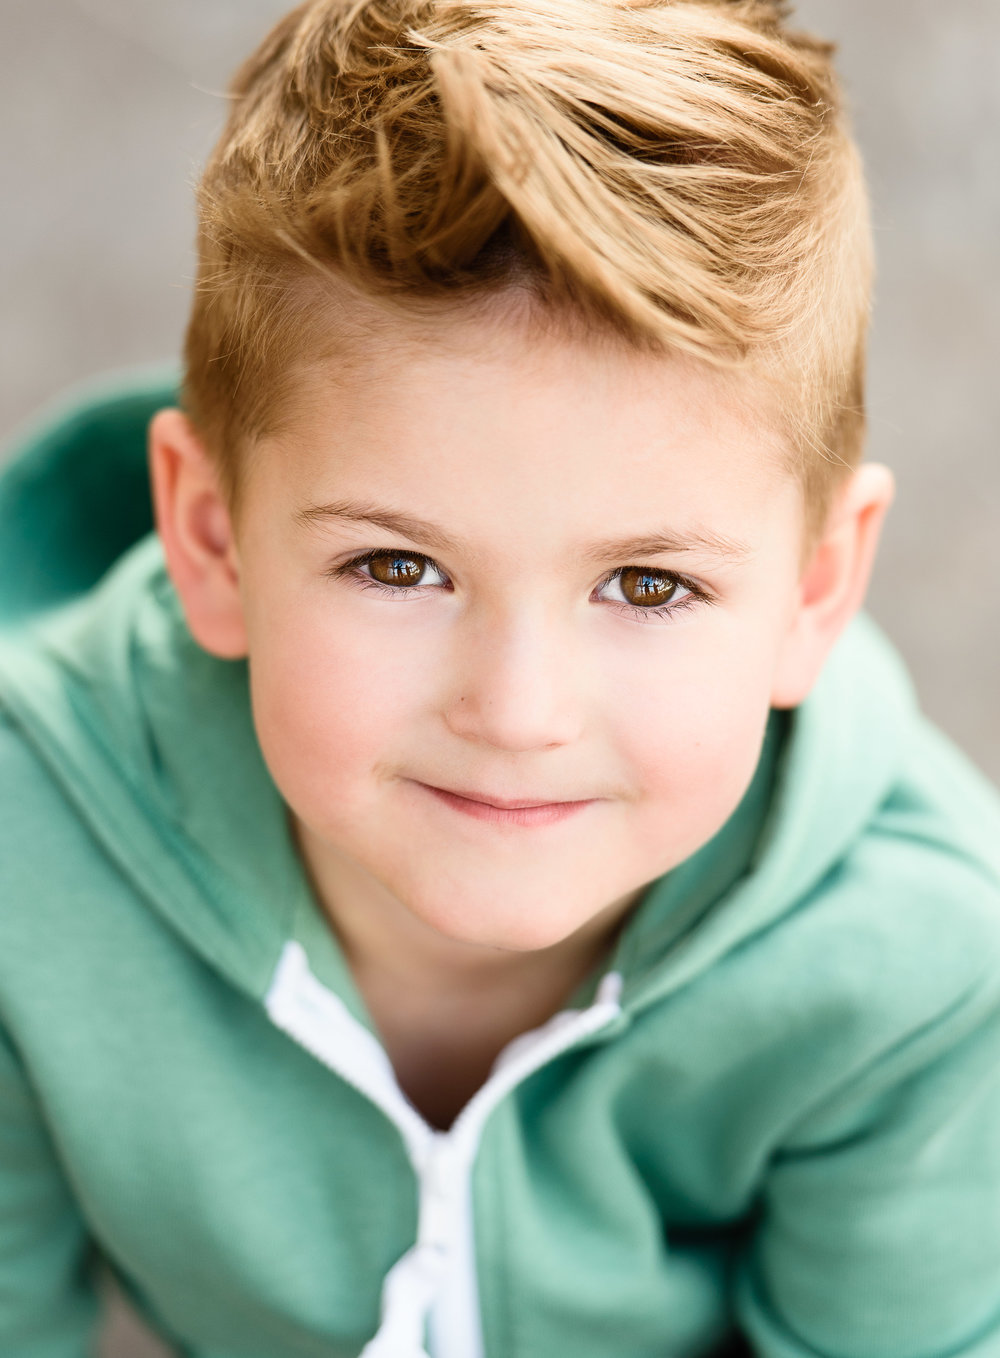 ChildrenHeadshots001.jpg